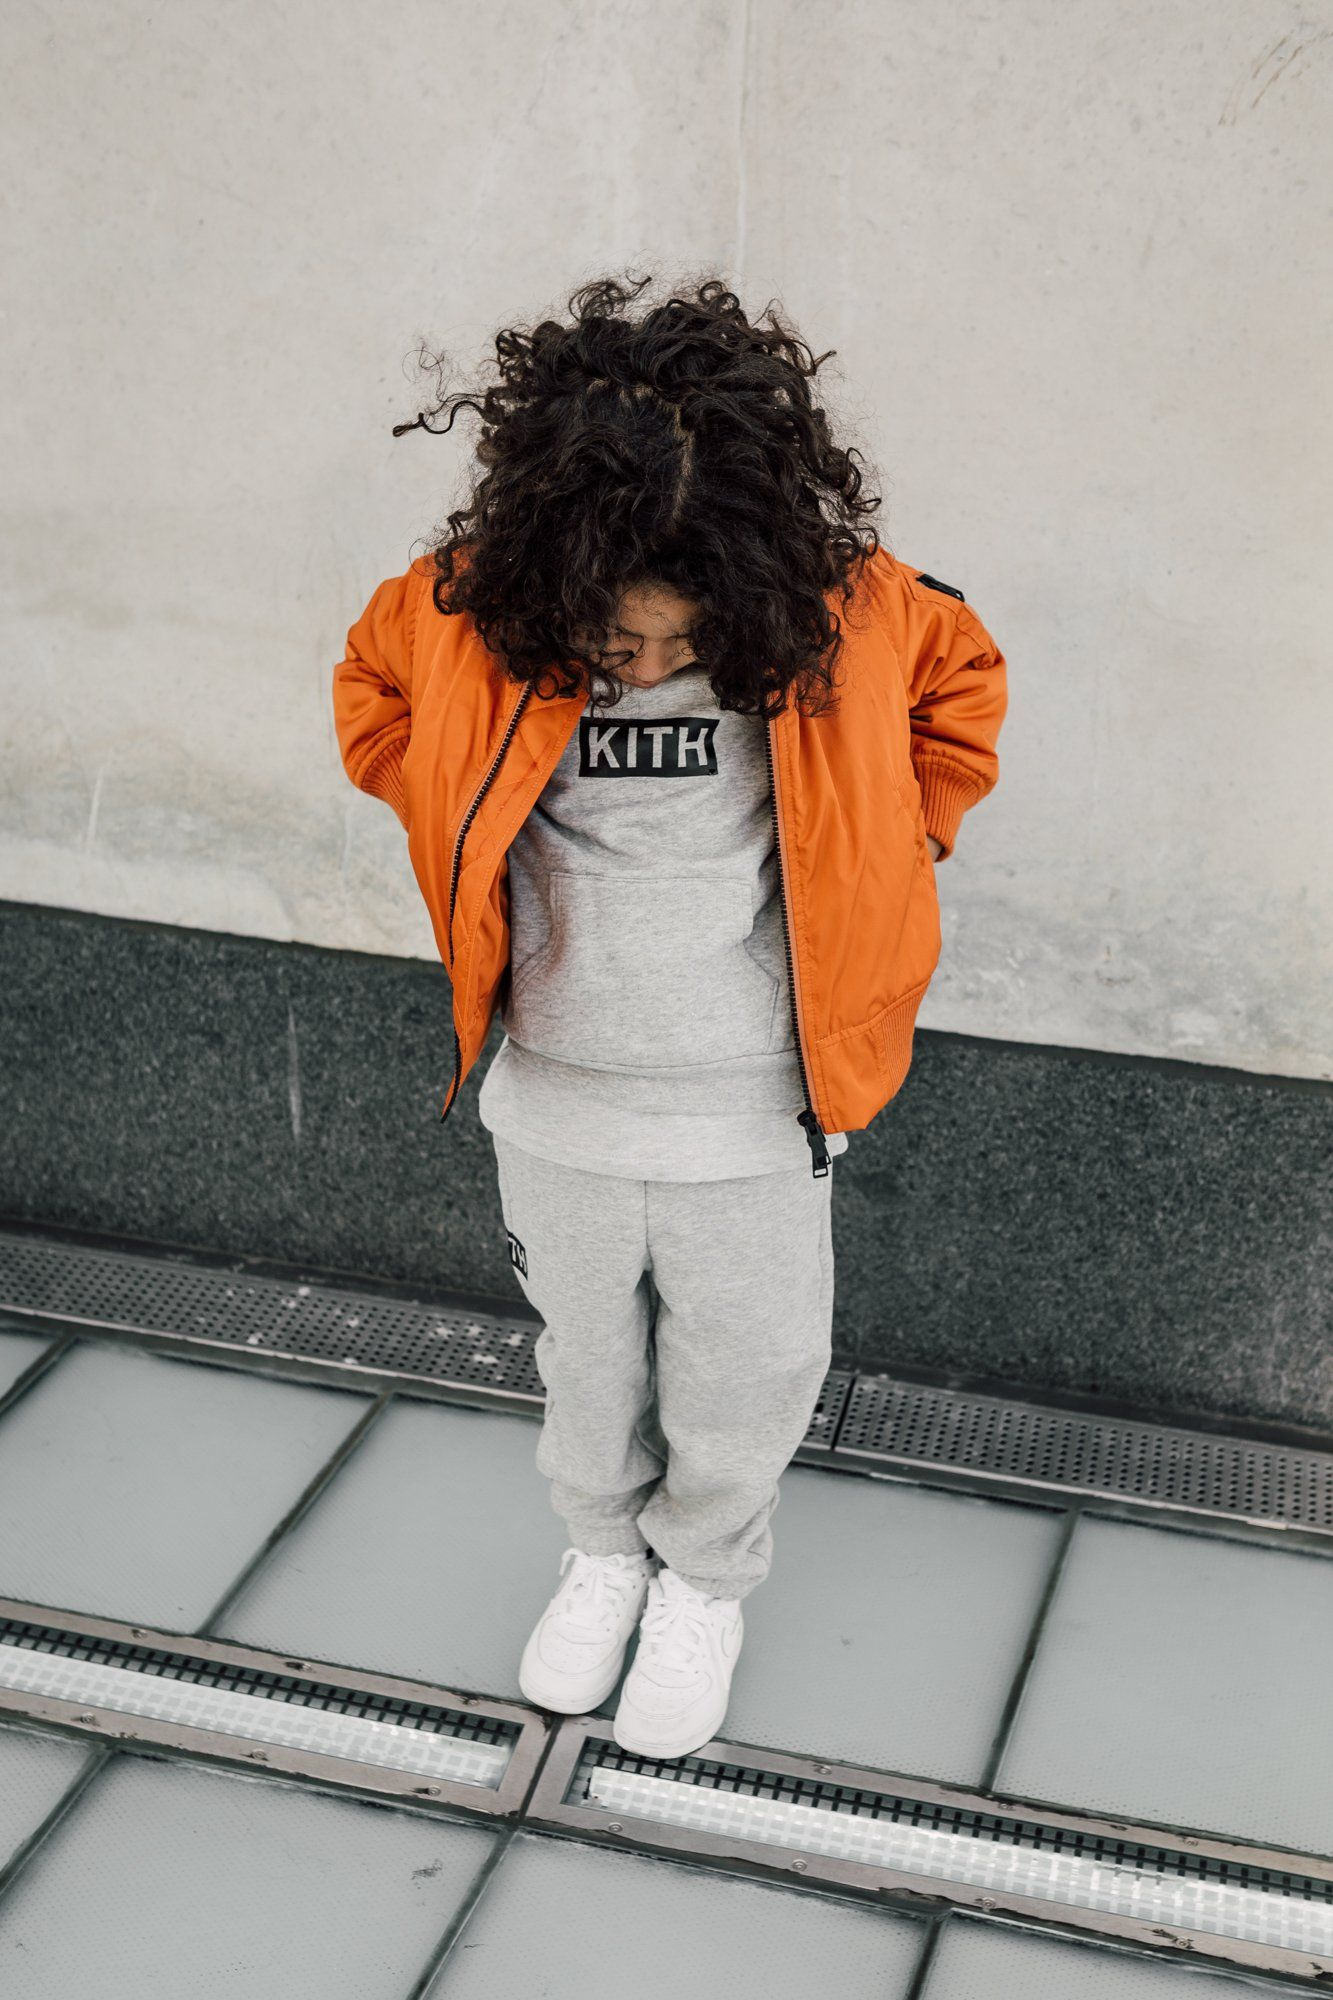 Kith Kidset Fall Collections Kids Couture Kith [ 2000 x 1333 Pixel ]